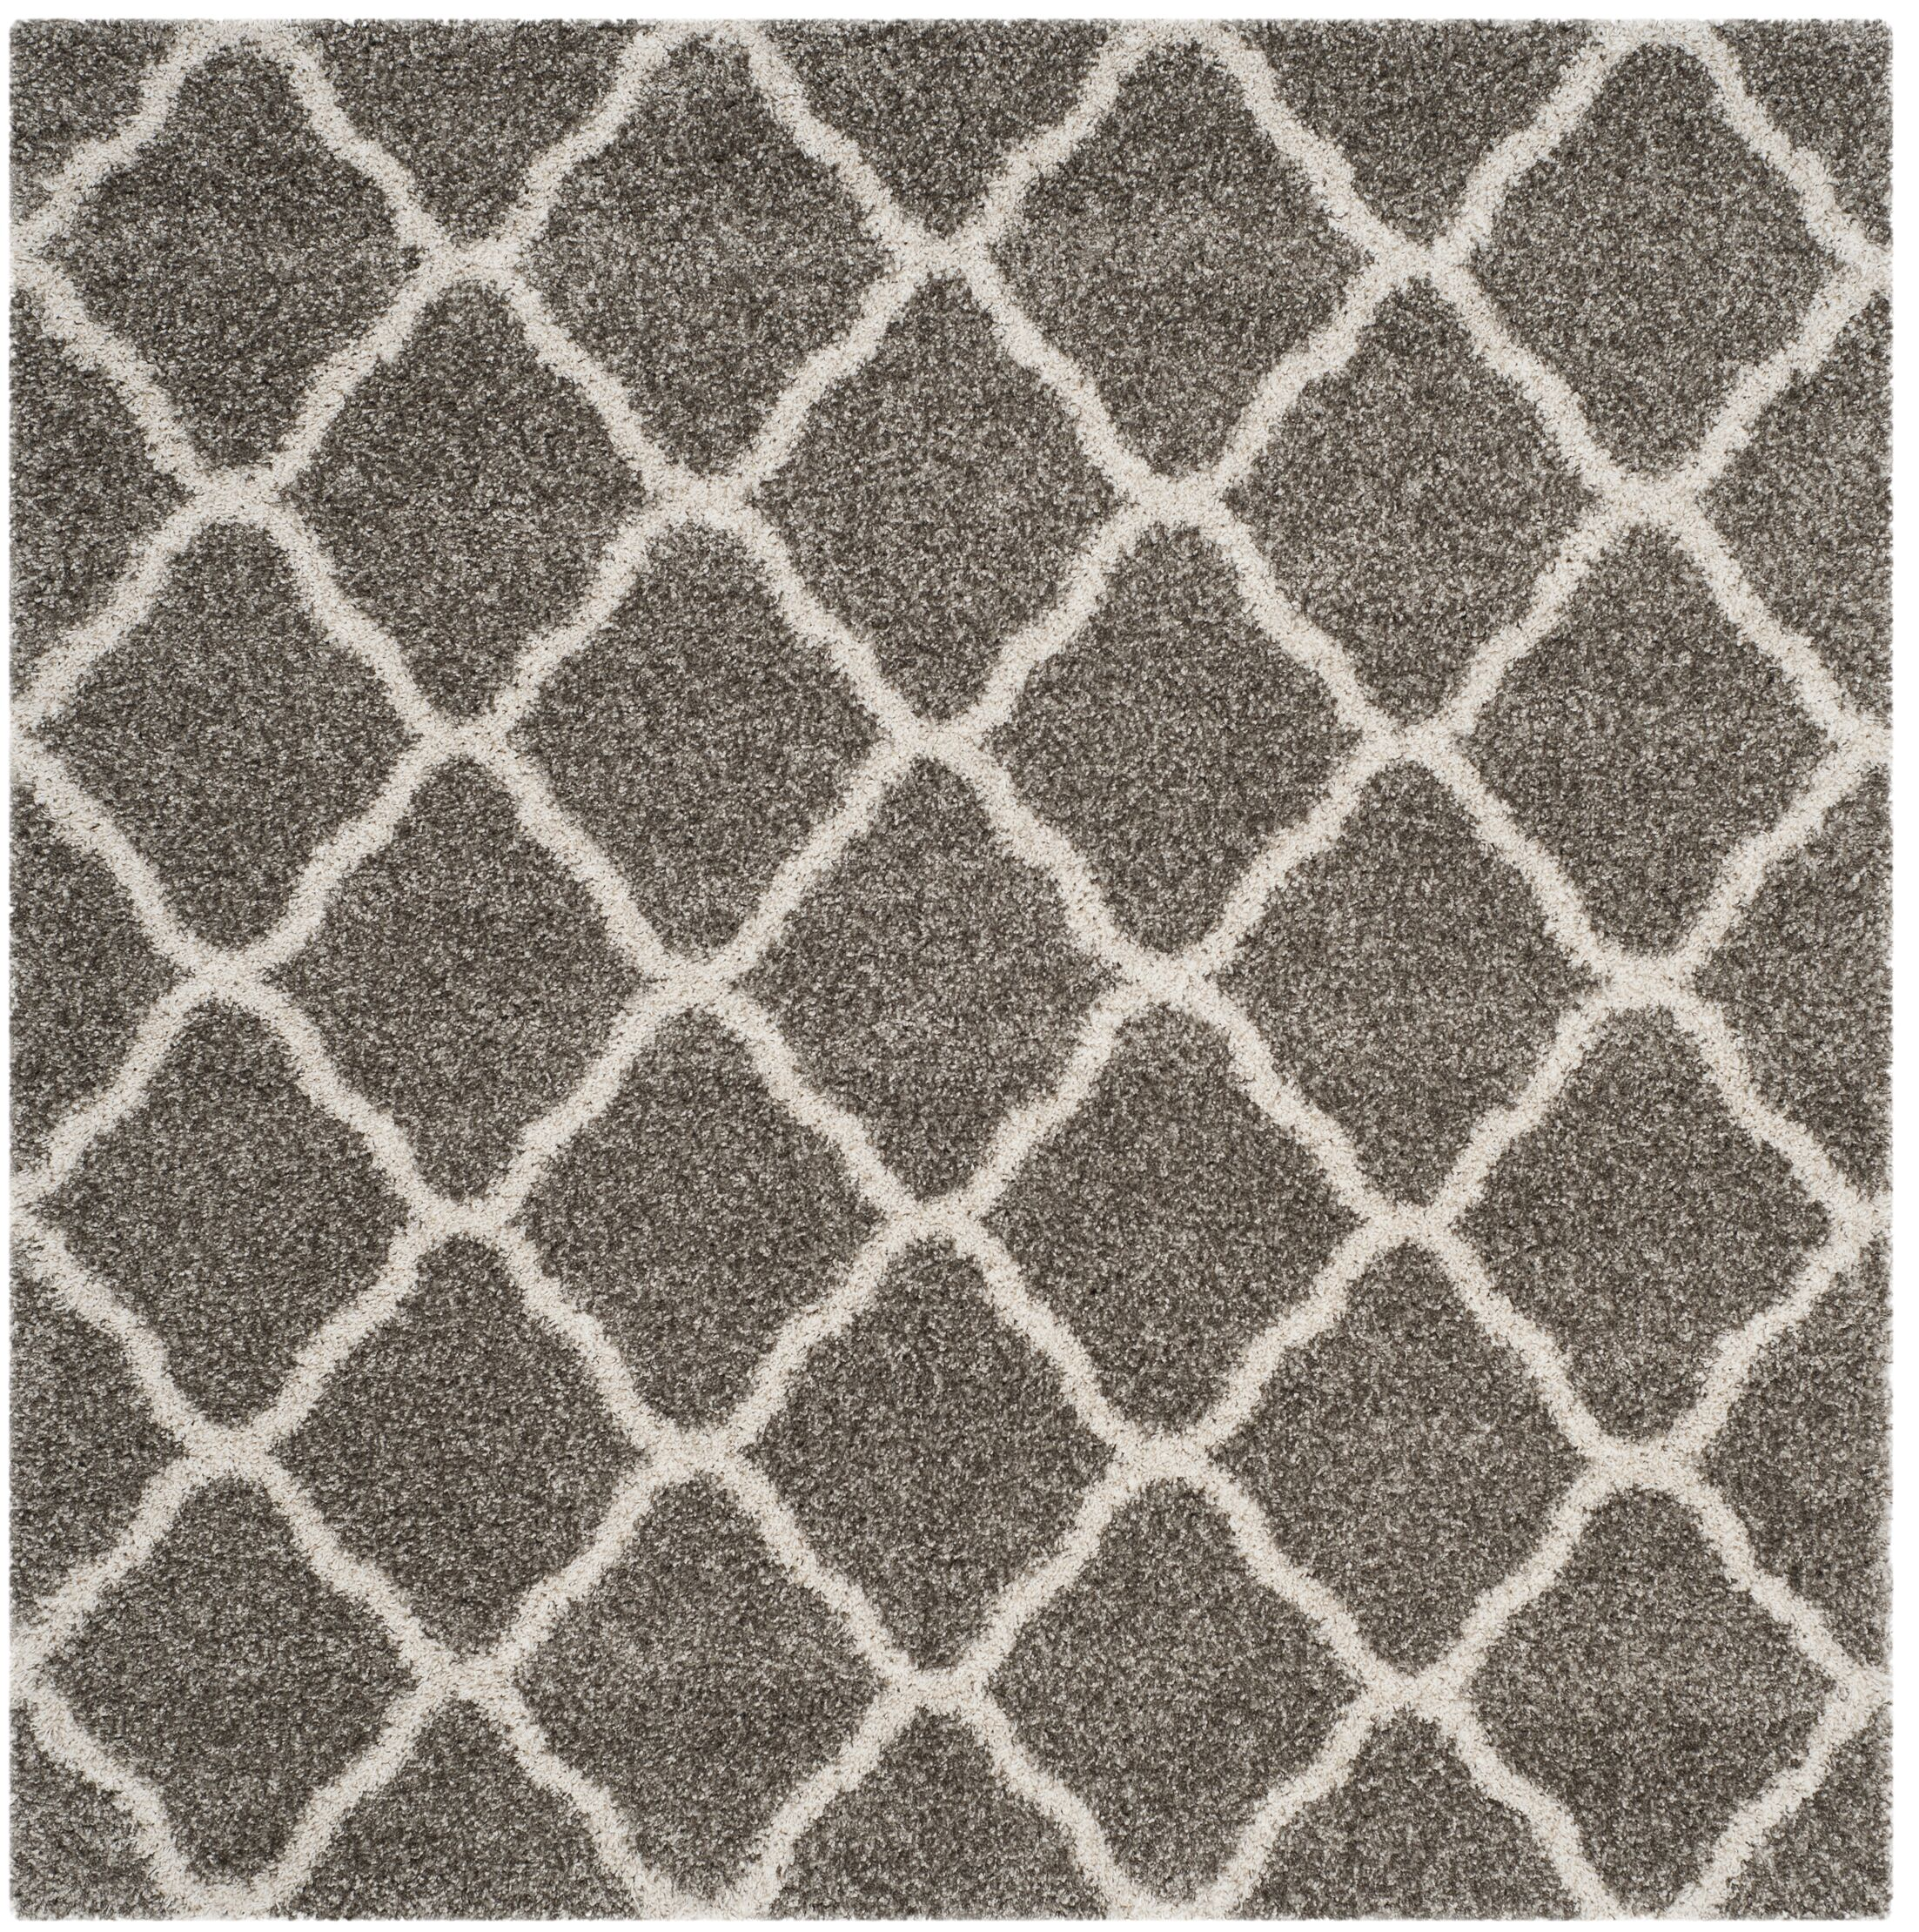 Buford Gray/Ivory Area Rug Rug Size: Square 7'